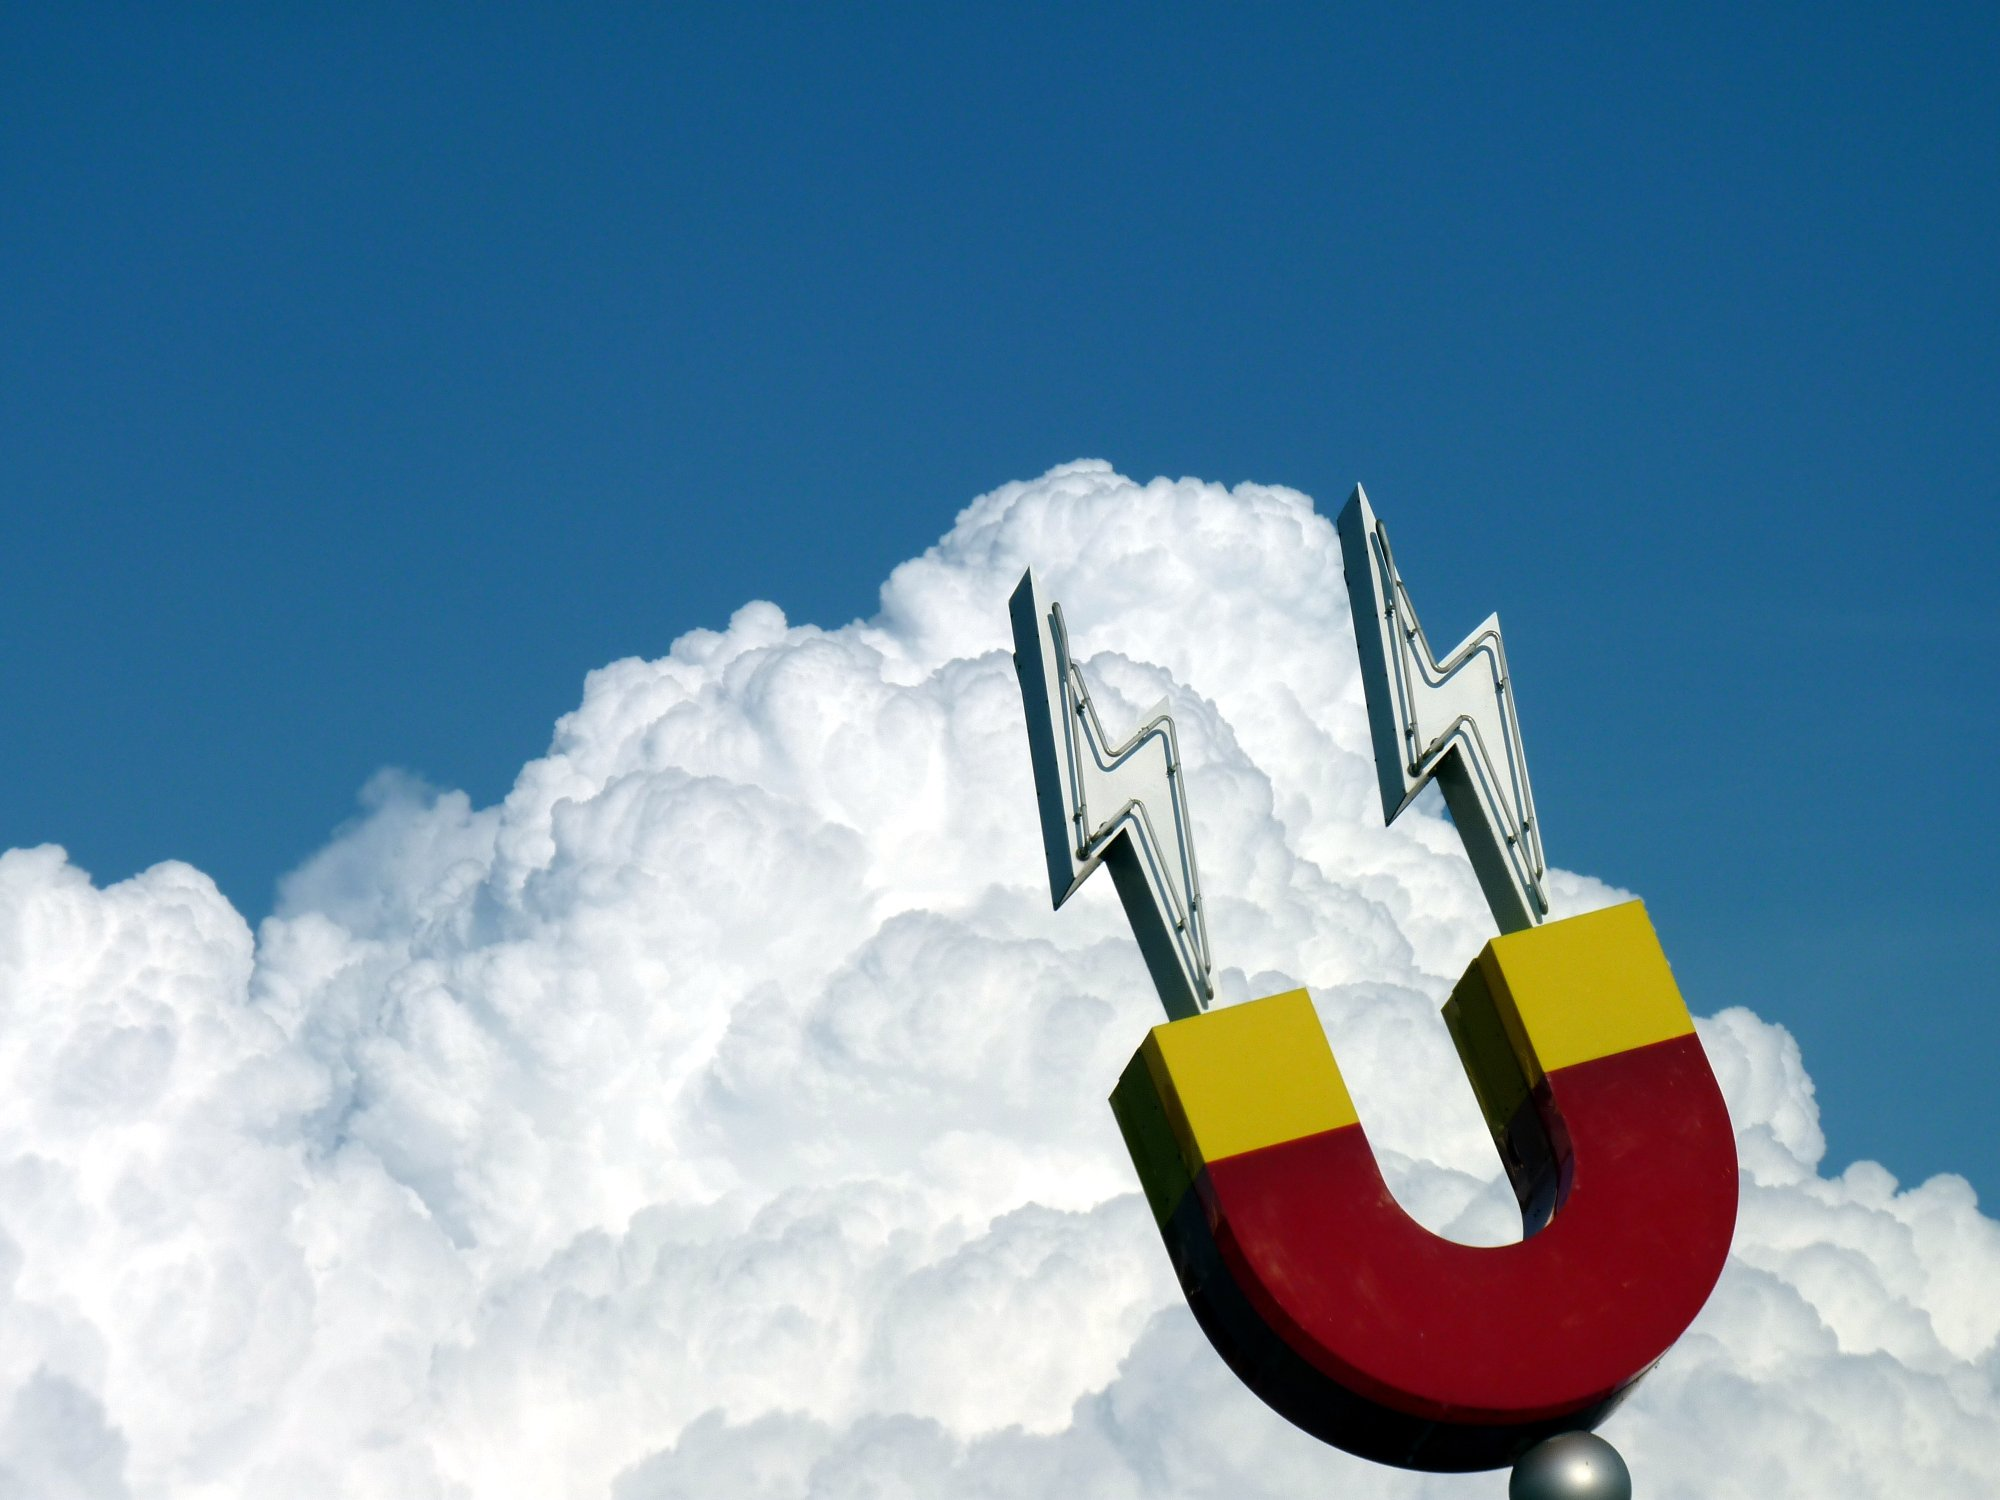 Jud's Disney Picture of the Day: Cloud Magnet